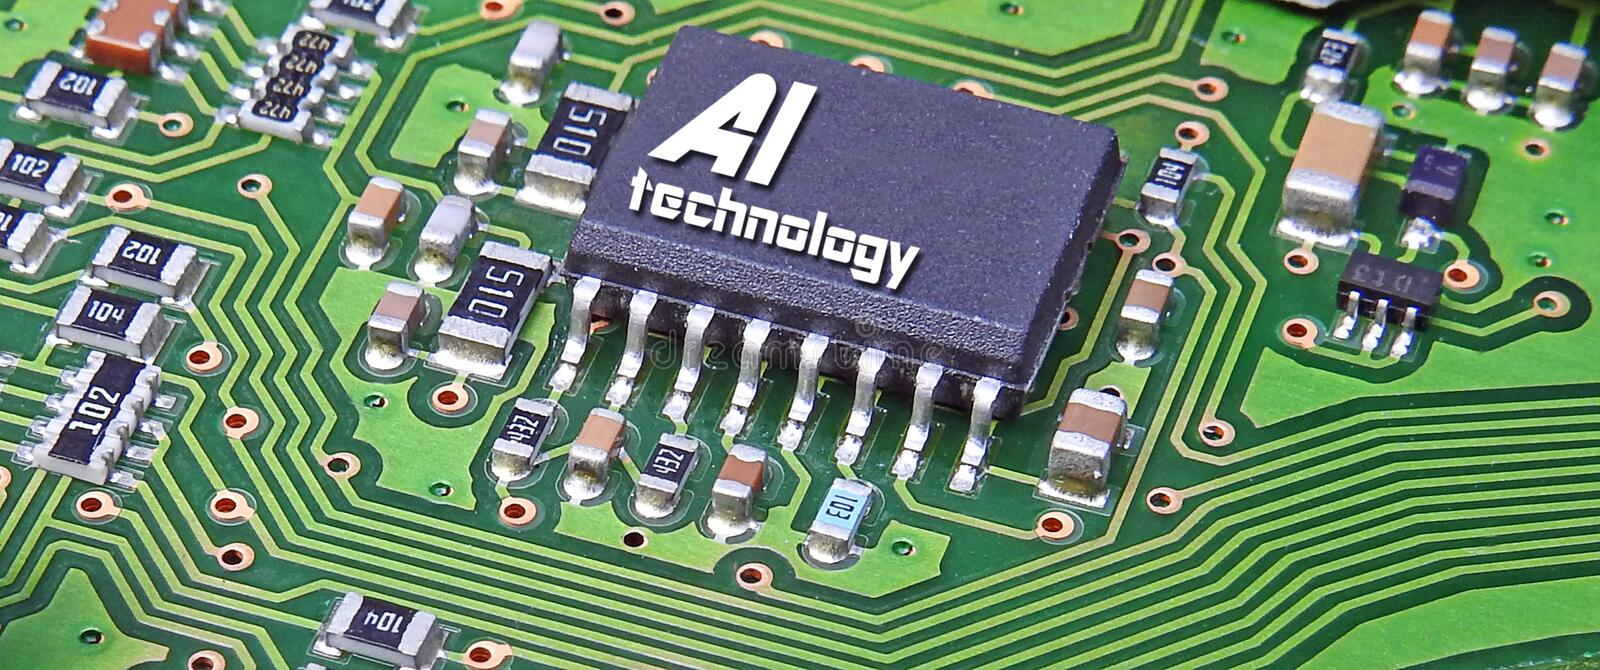 Computer digital ai artificial intelligence printed circuit board pcb information data electronics electrical system stock photo